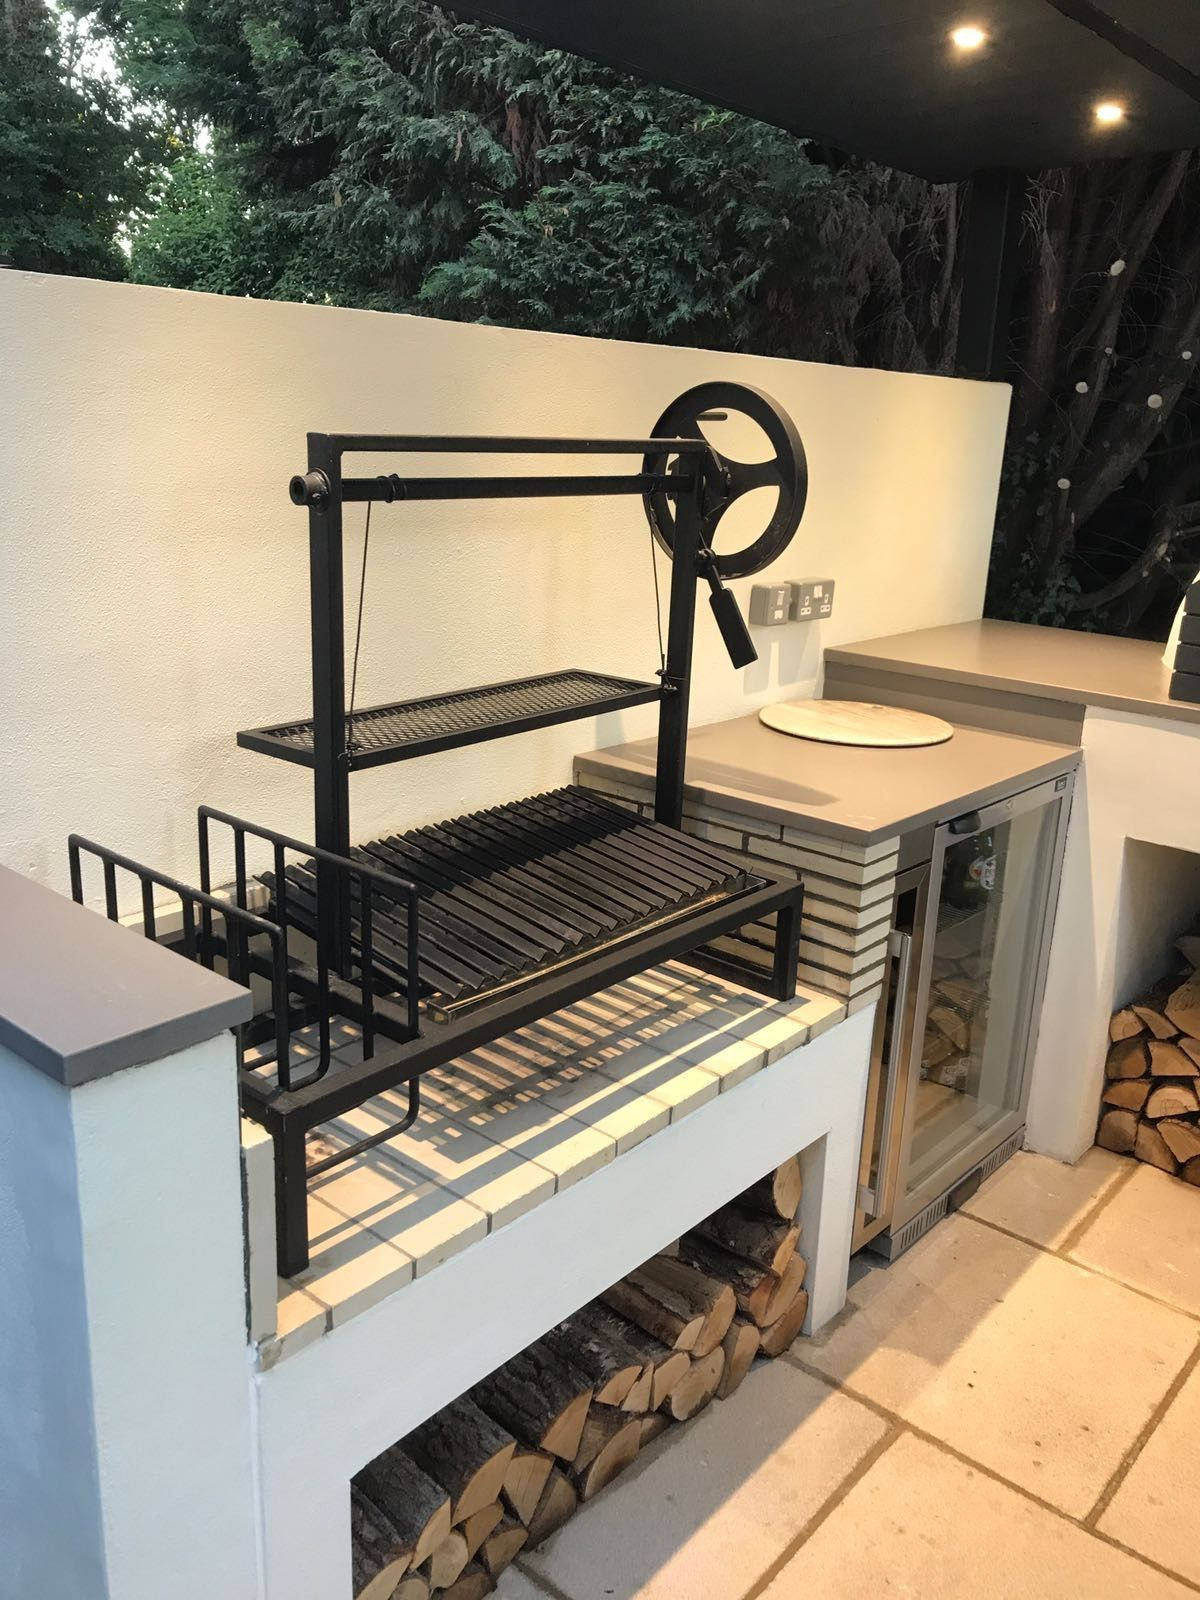 Argentinian Grill With Beer Fridge Wine Fridge And Pizza Oven Modular Outdoor Kitchens Outdoor Kitchen Kits Backyard Grilling